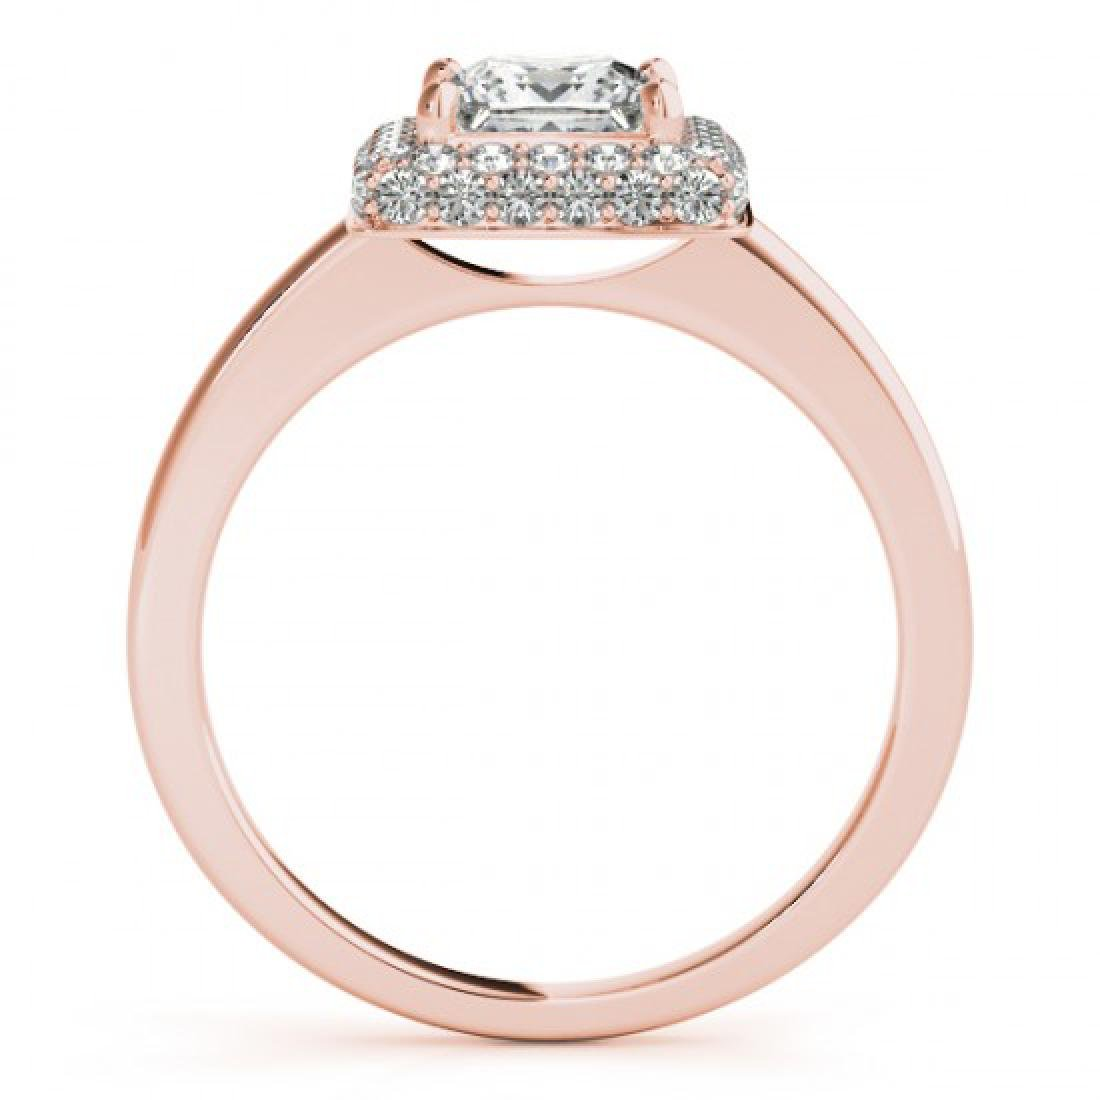 0.8 CTW Certified VS/SI Princess Diamond Solitaire Halo